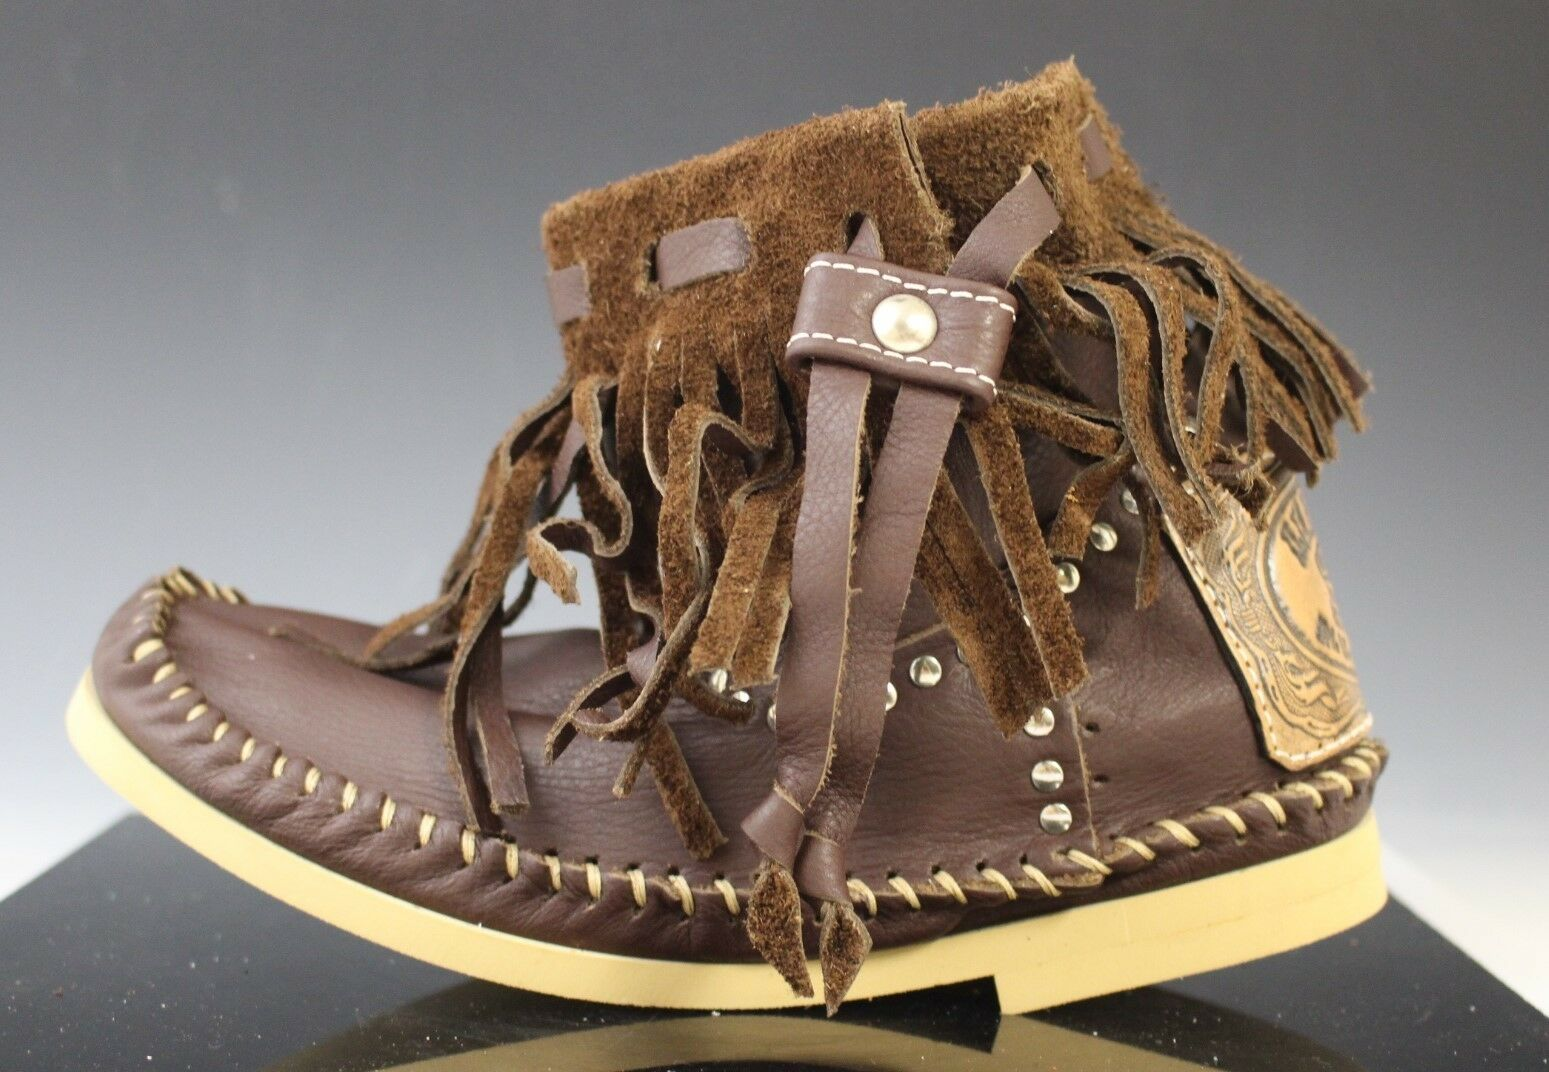 Hector Italian Leather Moccasin Boots shoes Tranchetto Frange Brown US Size 6